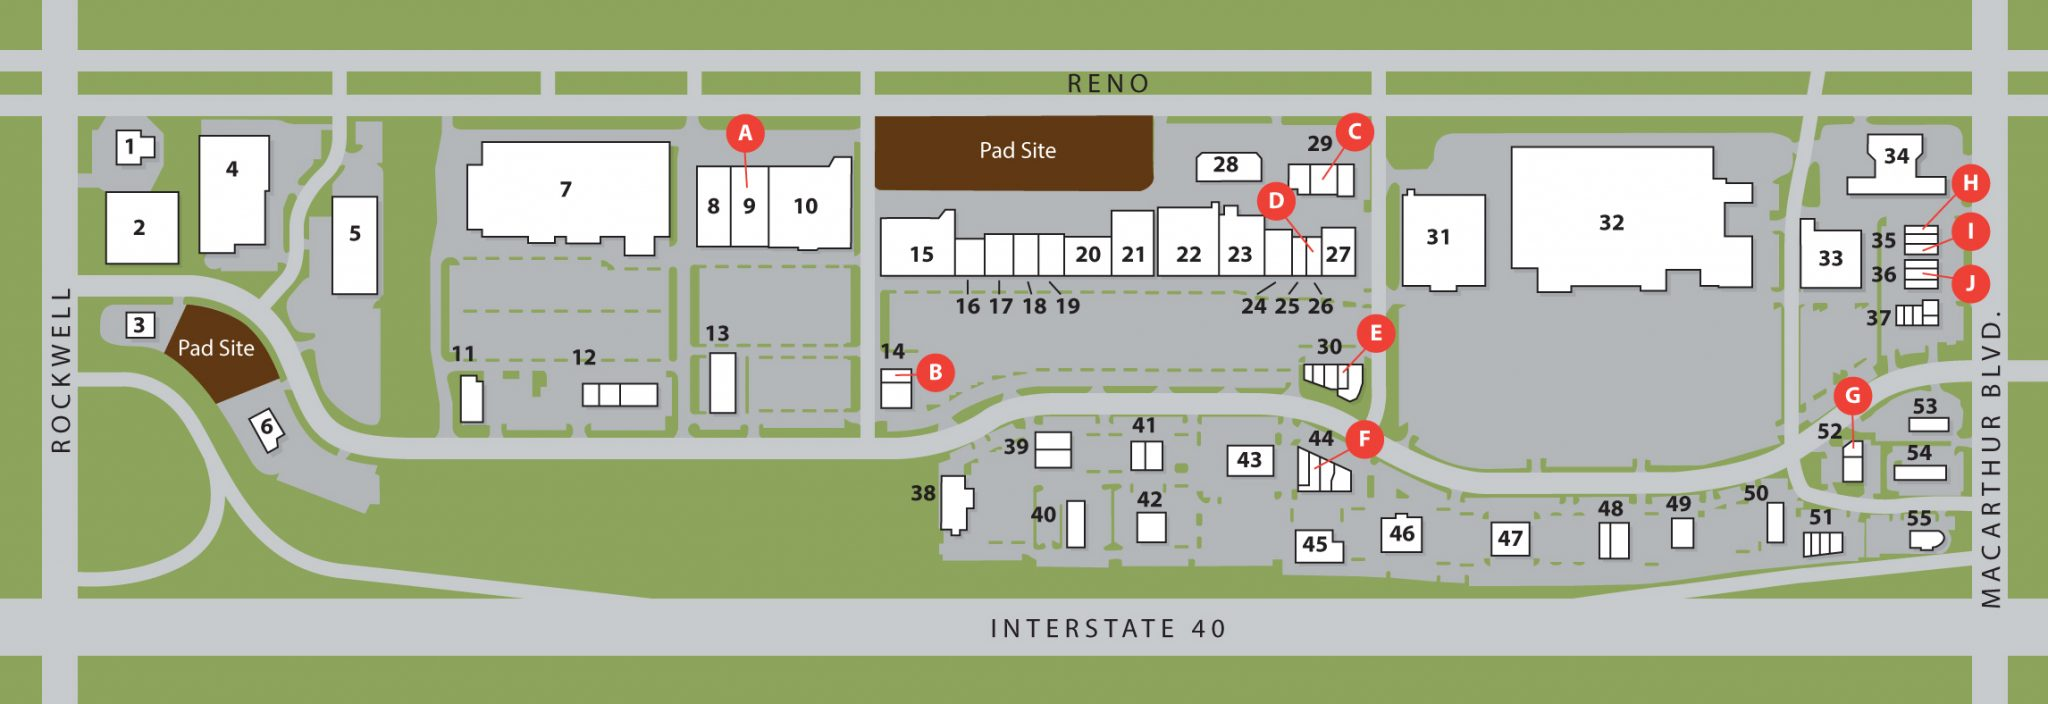 illustrated overhead view map of the westgate marketplace and its current availabilities and tenants